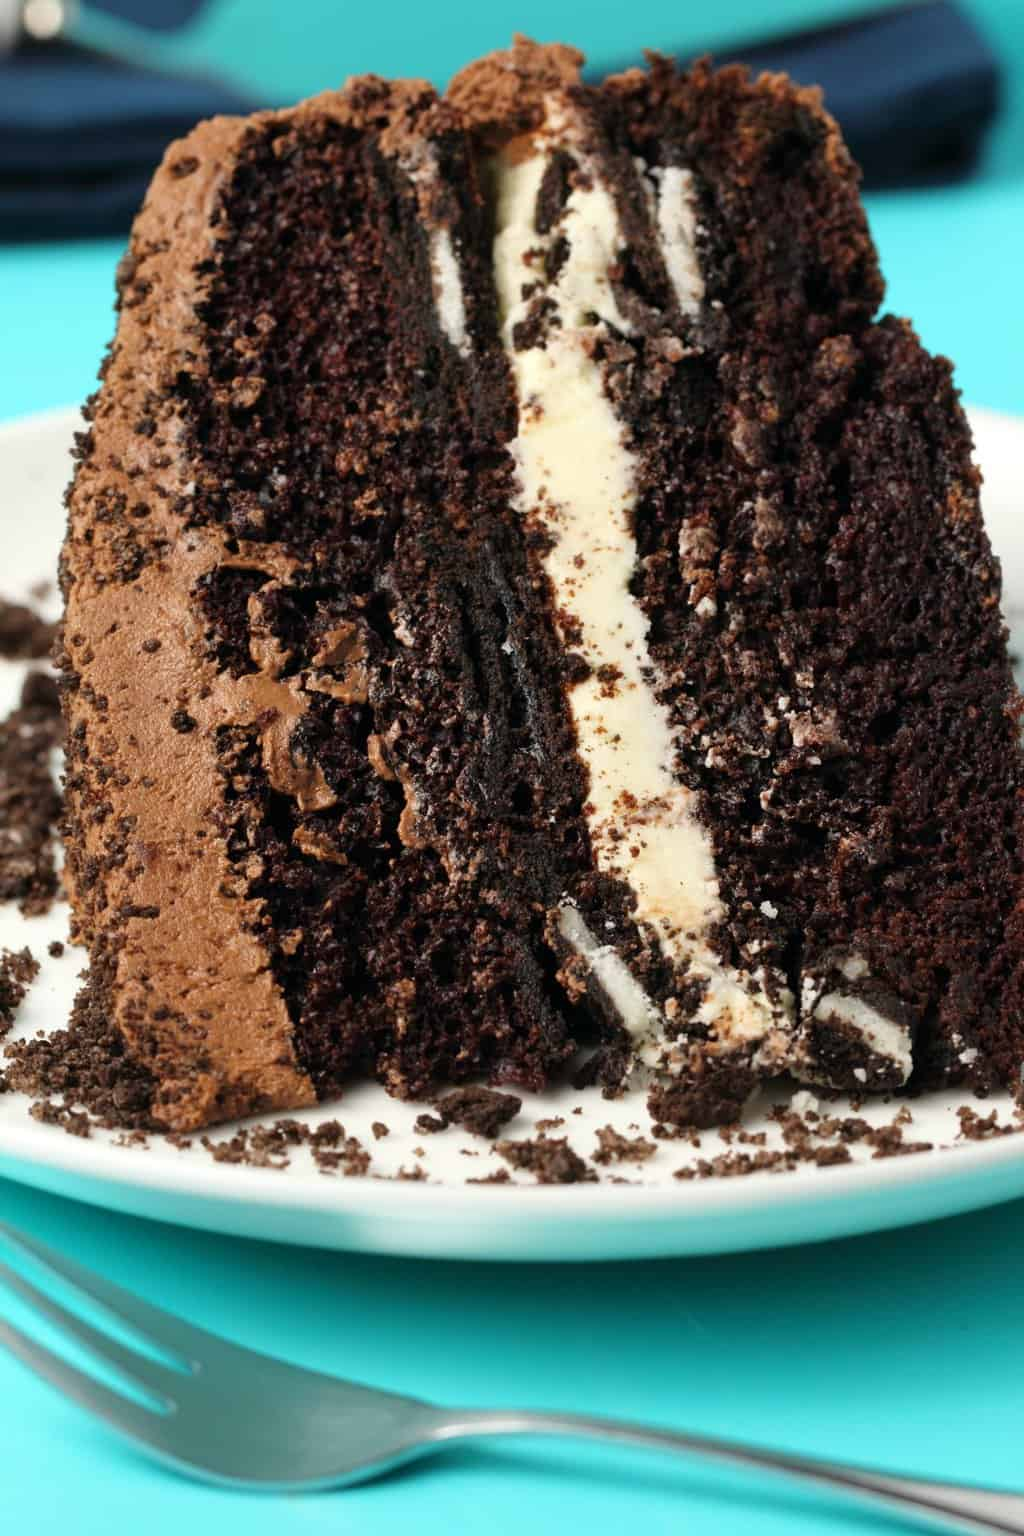 Slice of vegan oreo cake on a white plate with a cake fork.